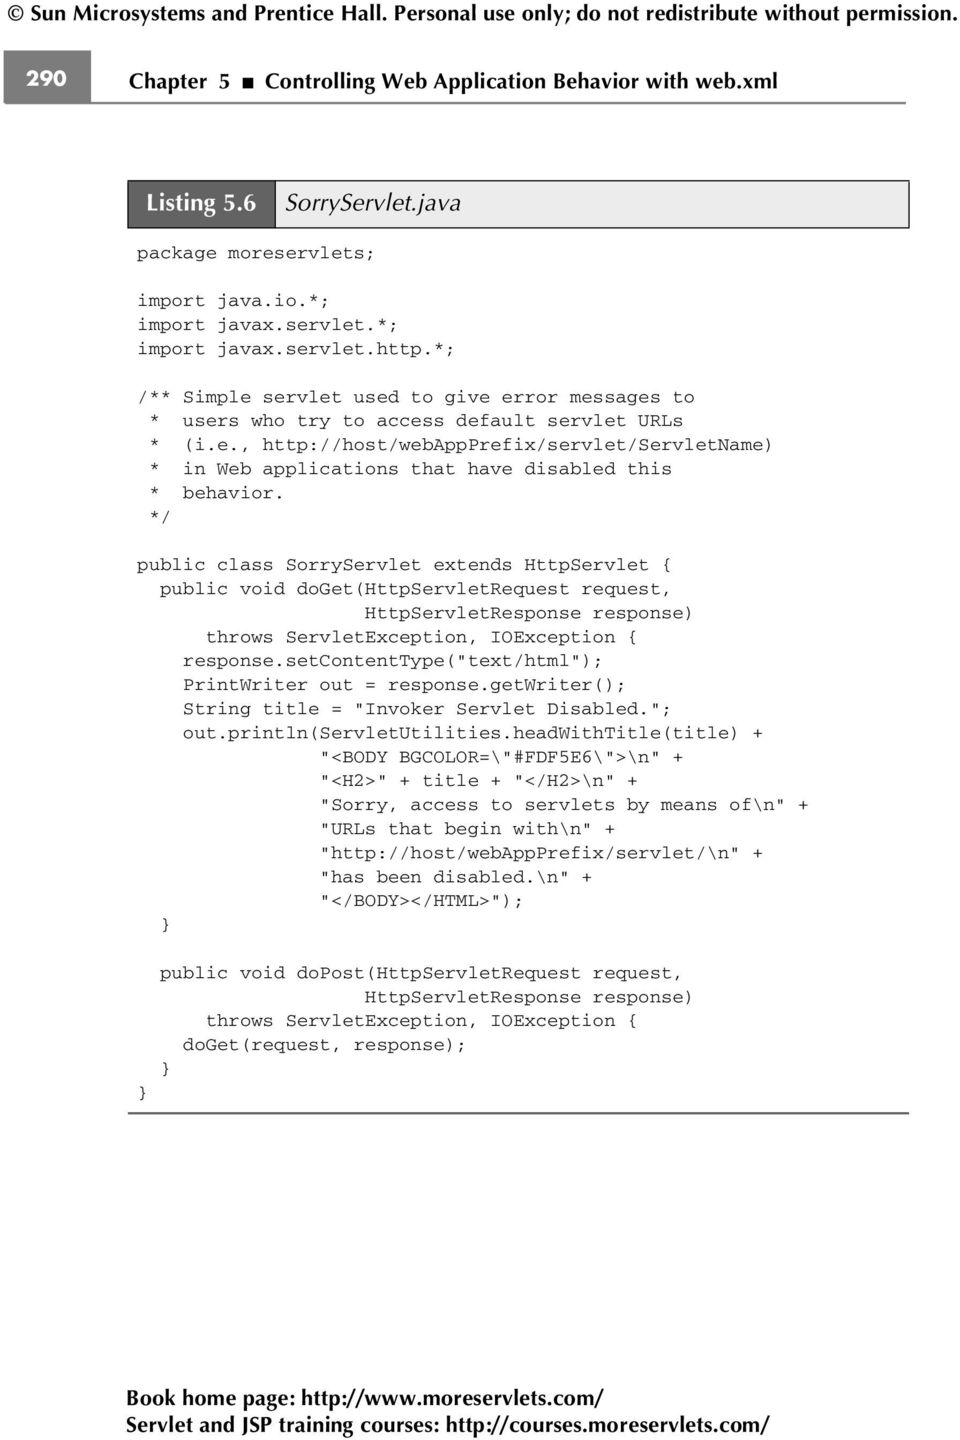 CONTROLLING WEB APPLICATION BEHAVIOR WITH - PDF